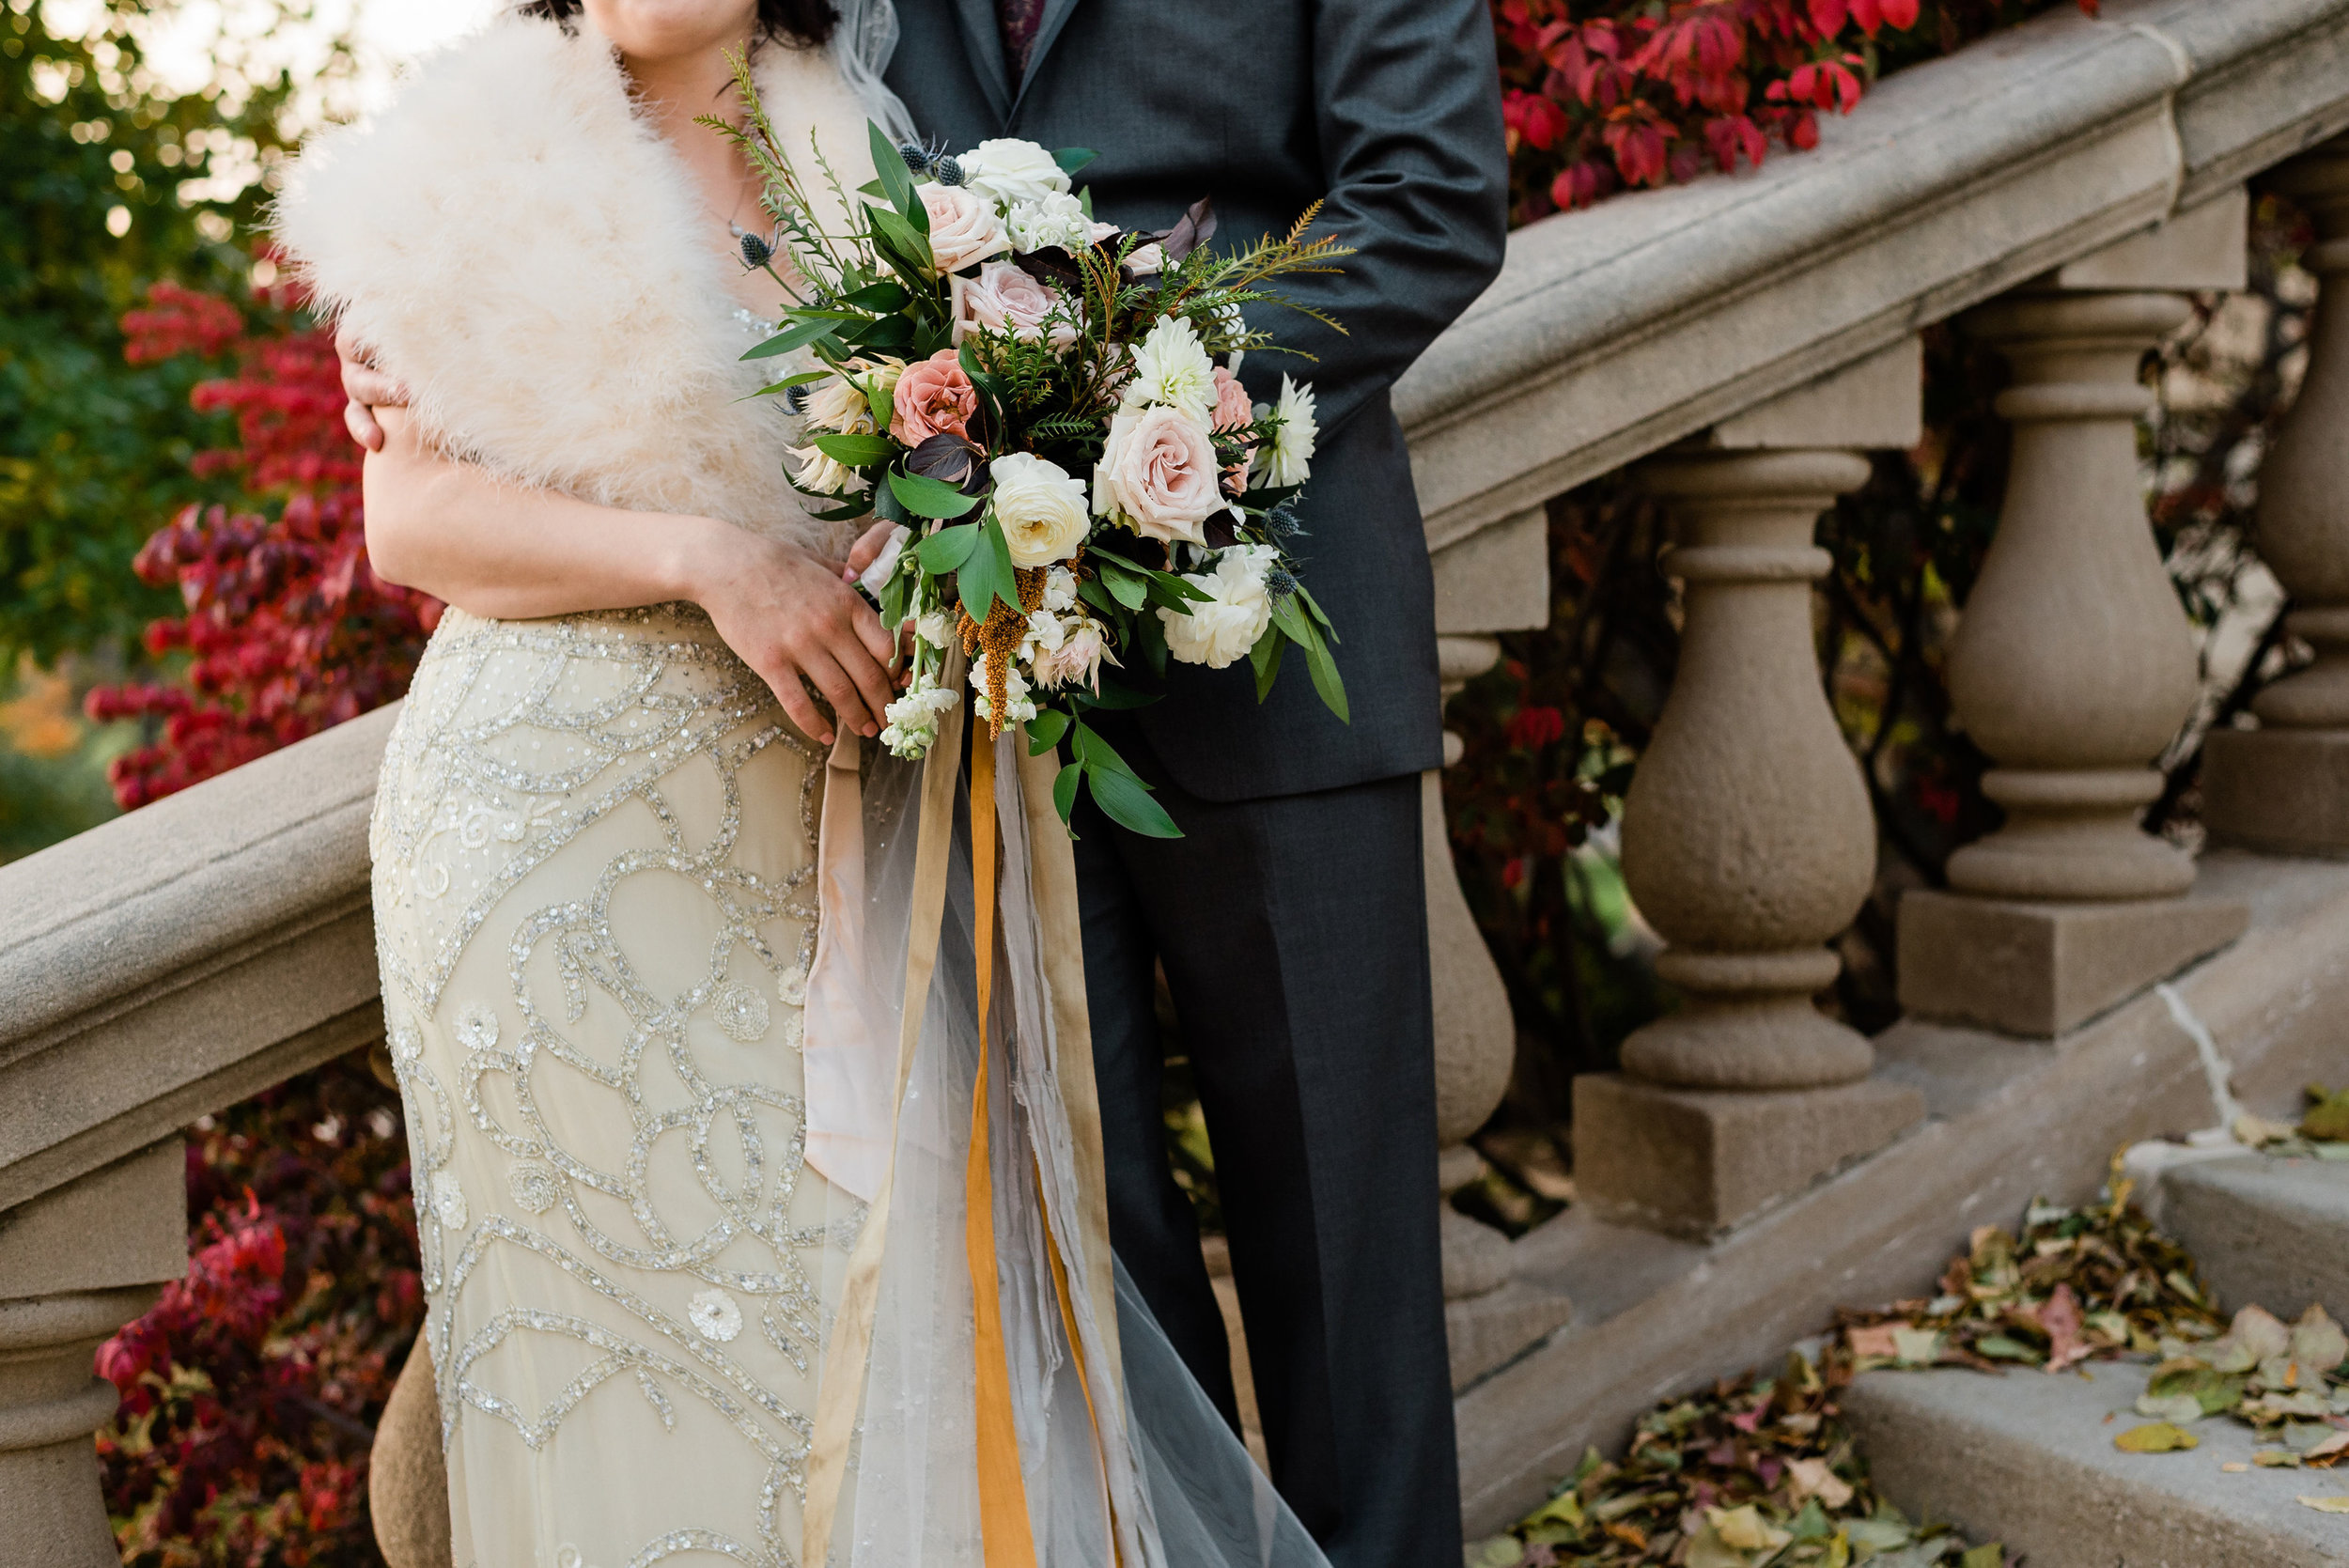 The Old Capital and Museum of natural history wedding